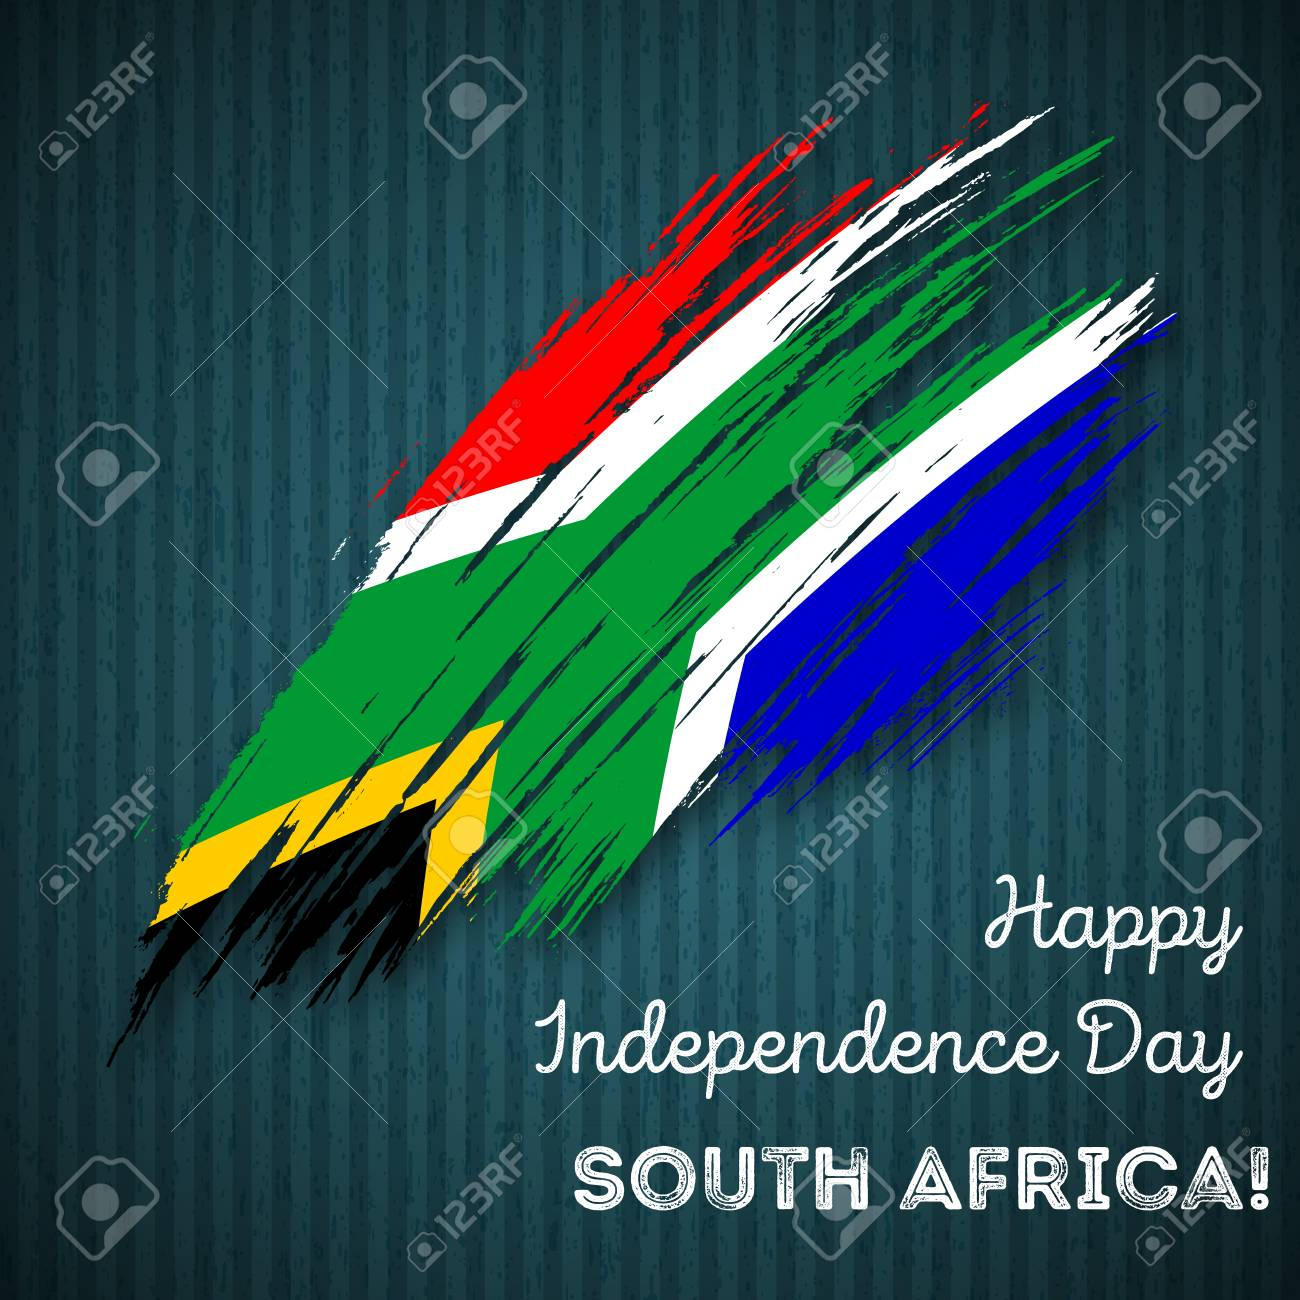 South Africa Independence Day Patriotic Design Expressive Brush